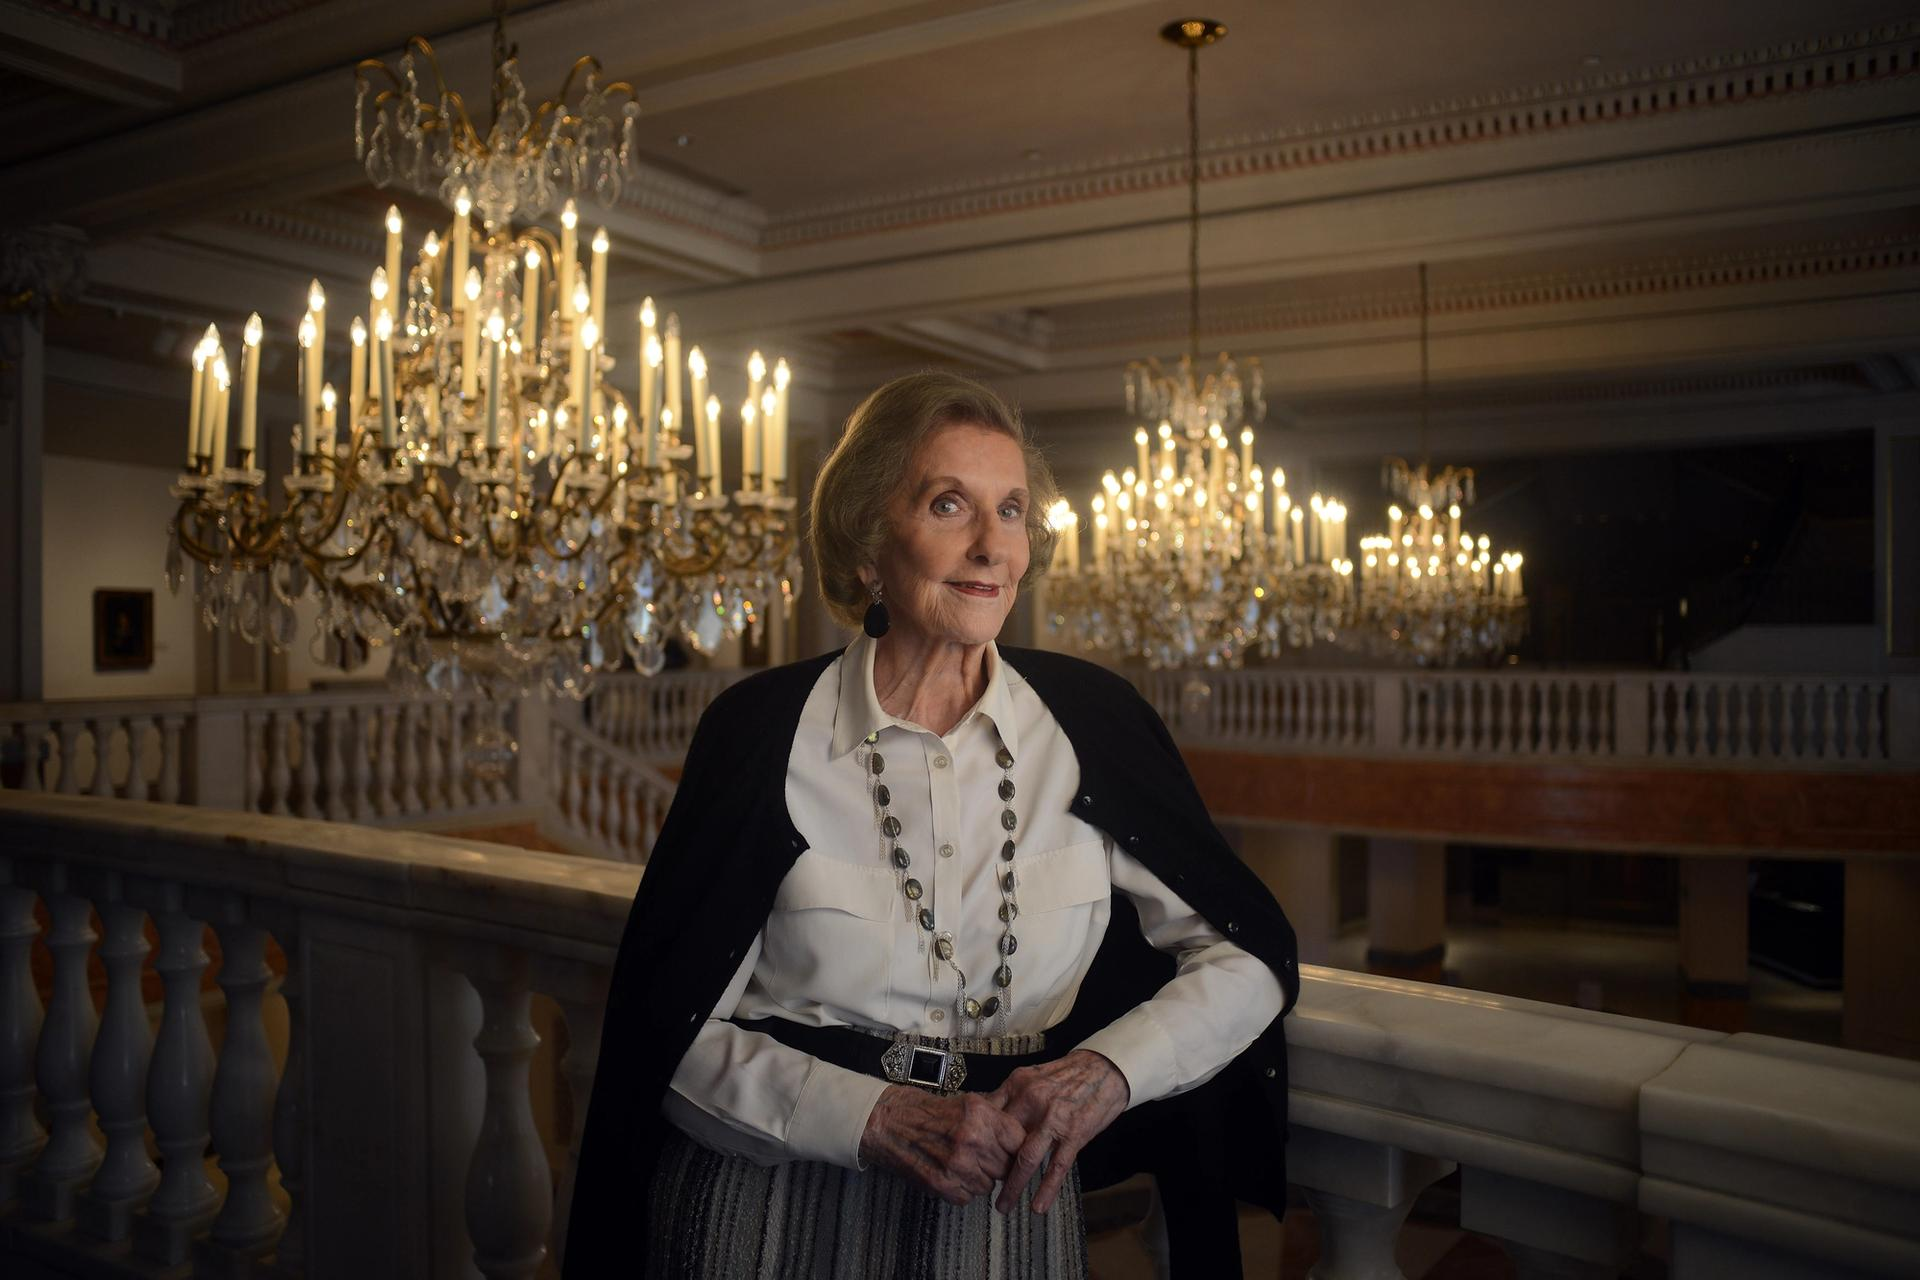 Wilhelmina Cole Holladay (then aged 91), the founder of the National Museum of Women in the Arts, poses for a portrait photograph inside the Washington, DC museum Photo: Astrid Riecken For The Washington Post via Getty Images